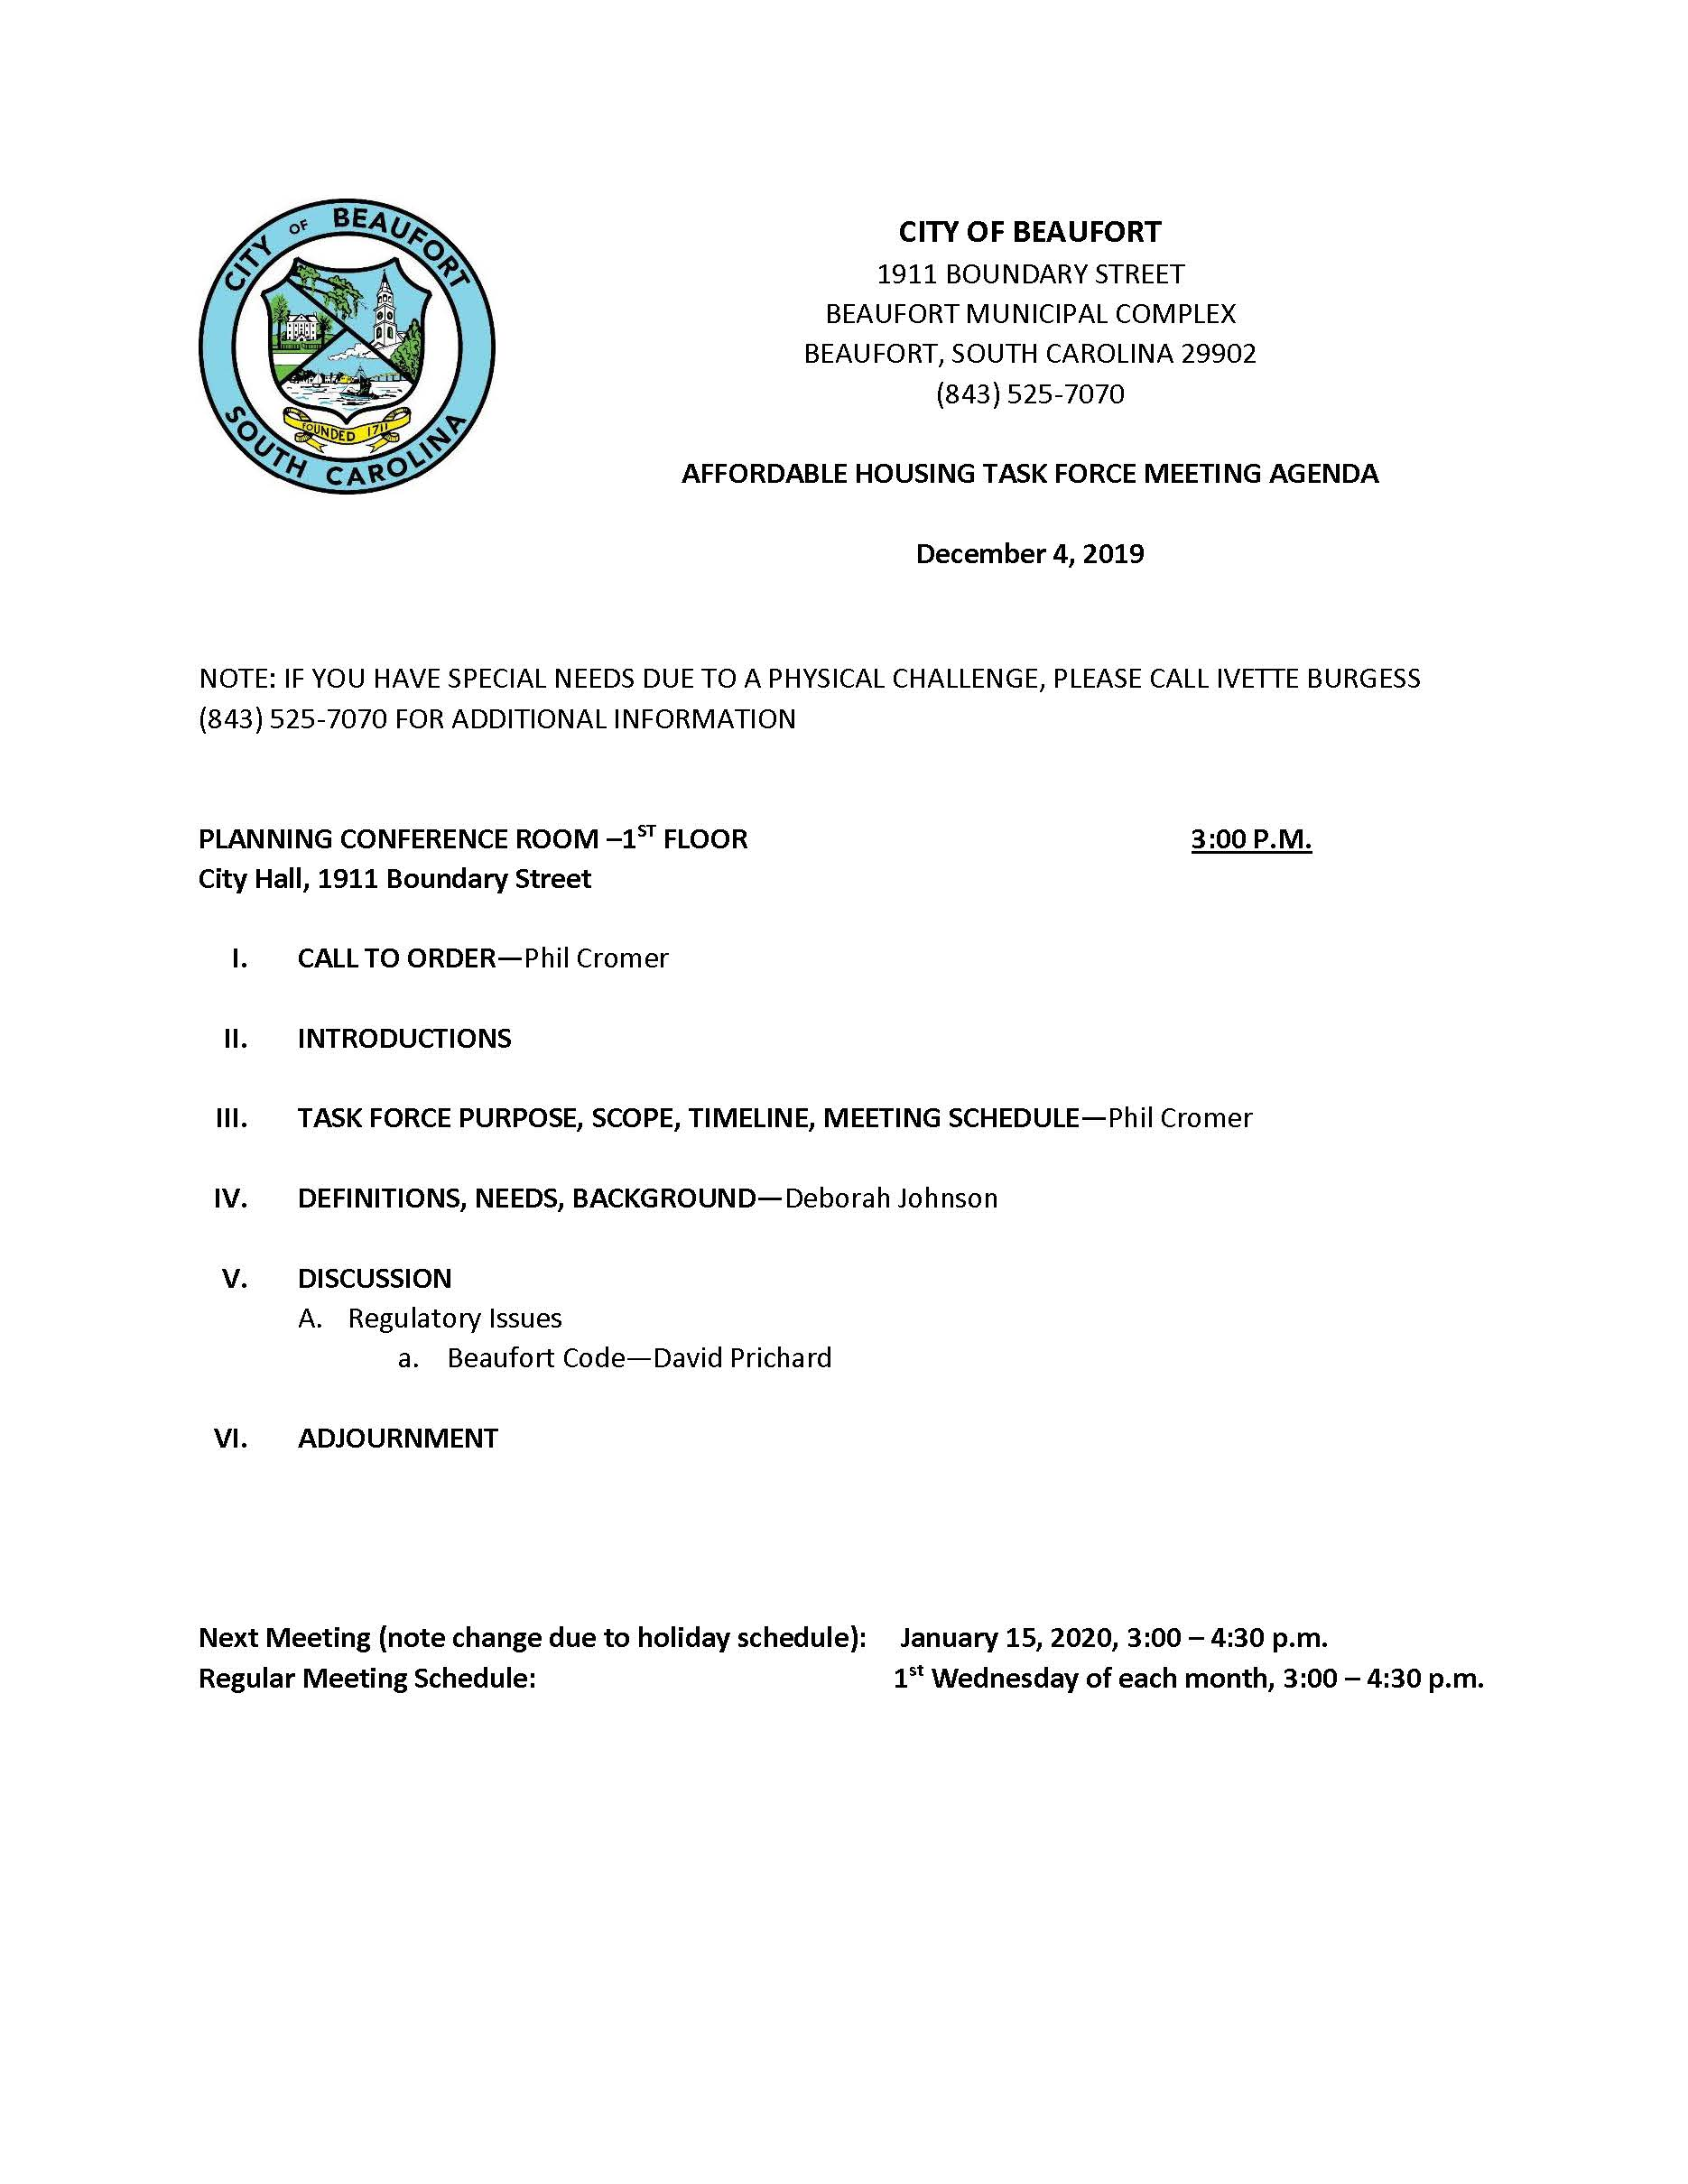 Affordable Housing Task Force Agenda 12.4.19